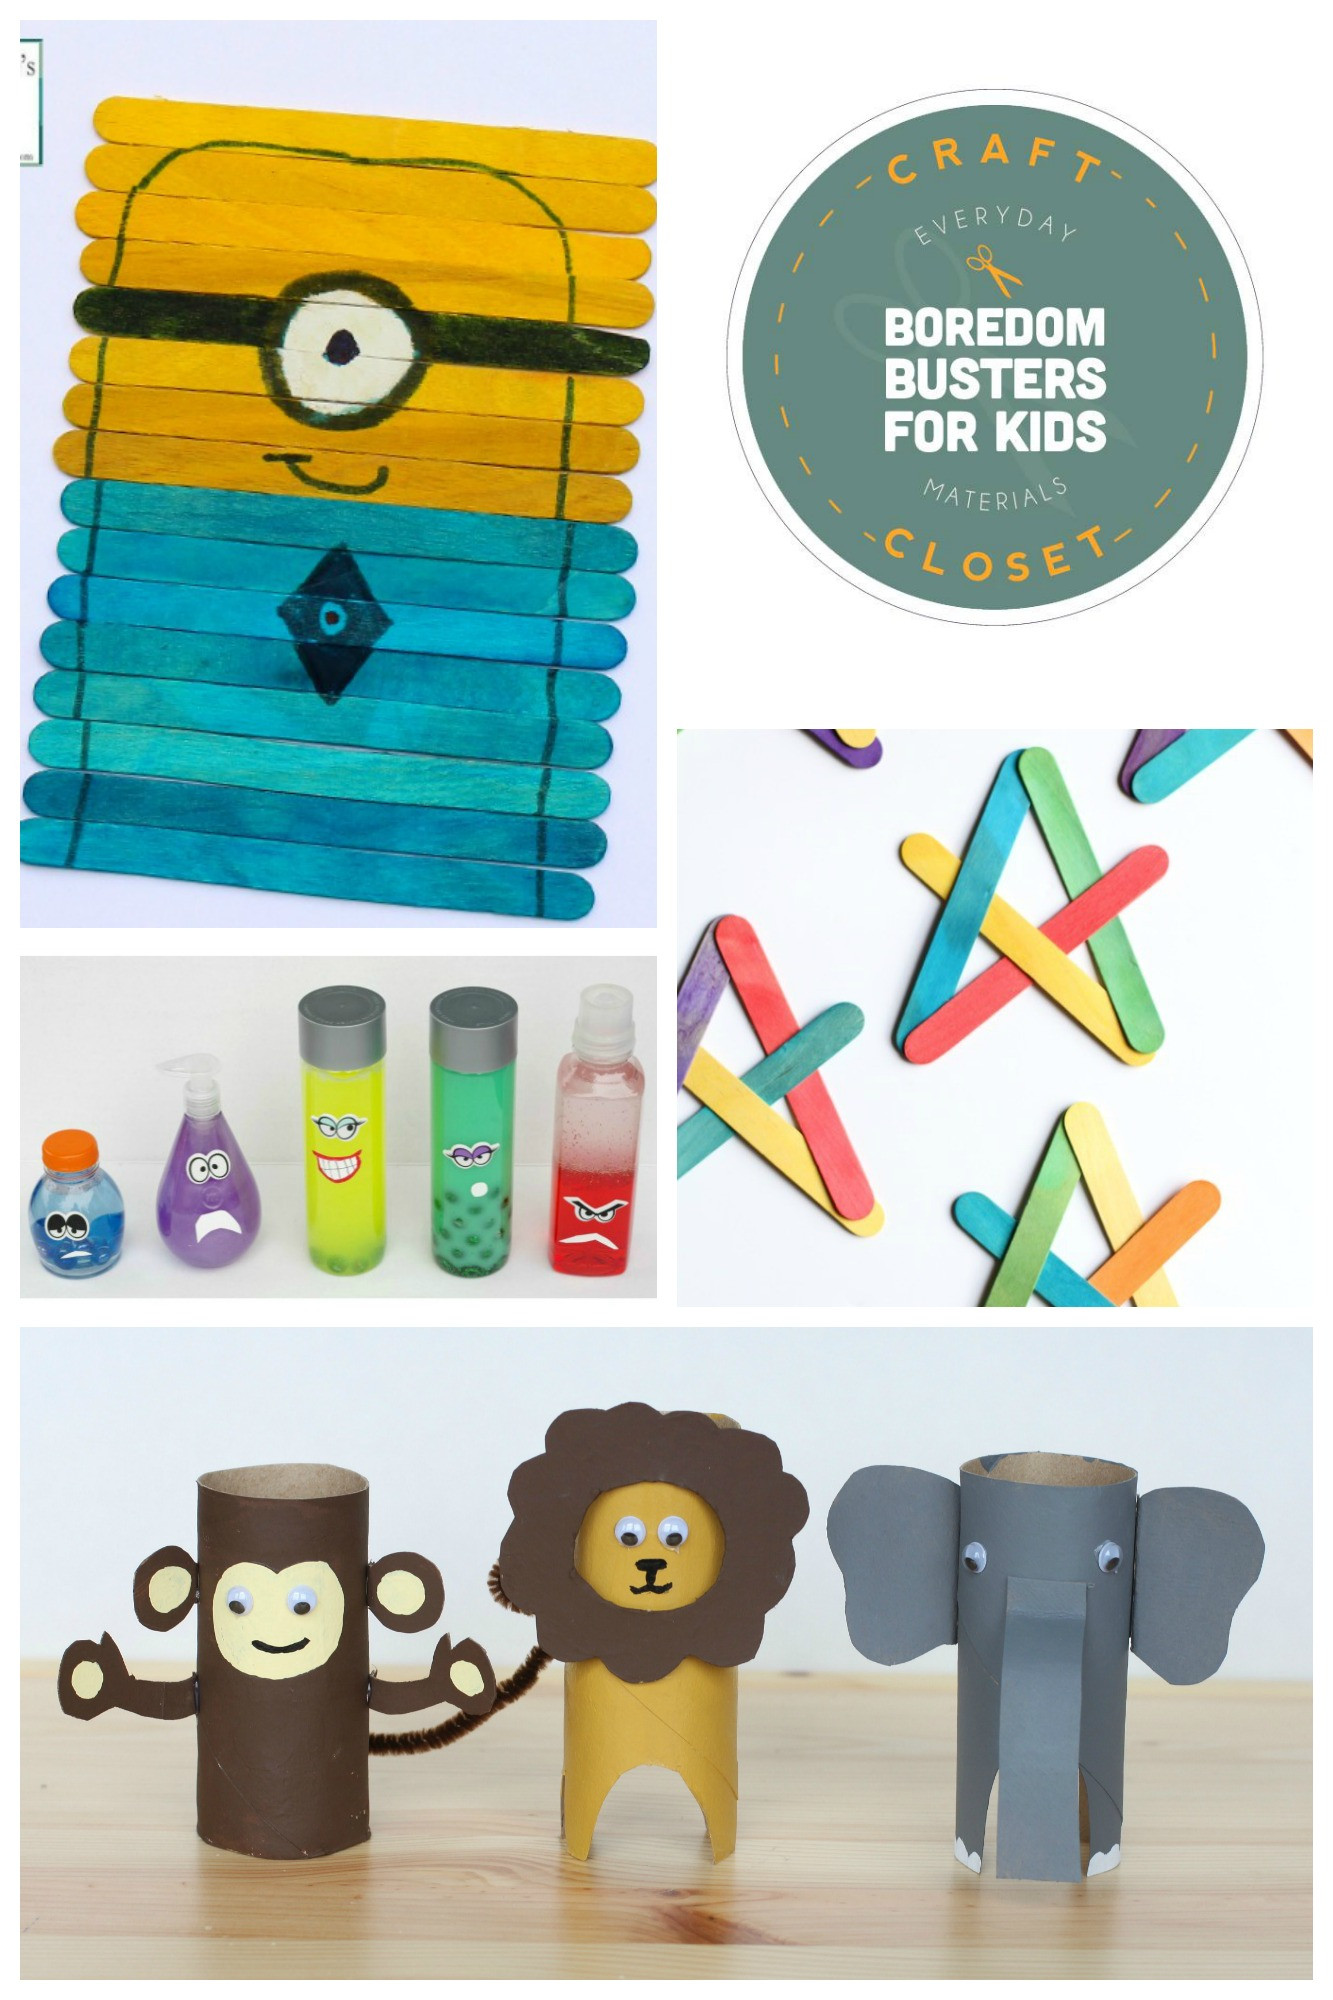 Fun Projects For Kids  25 Crafts and Activities for Kids Using Everyday Materials